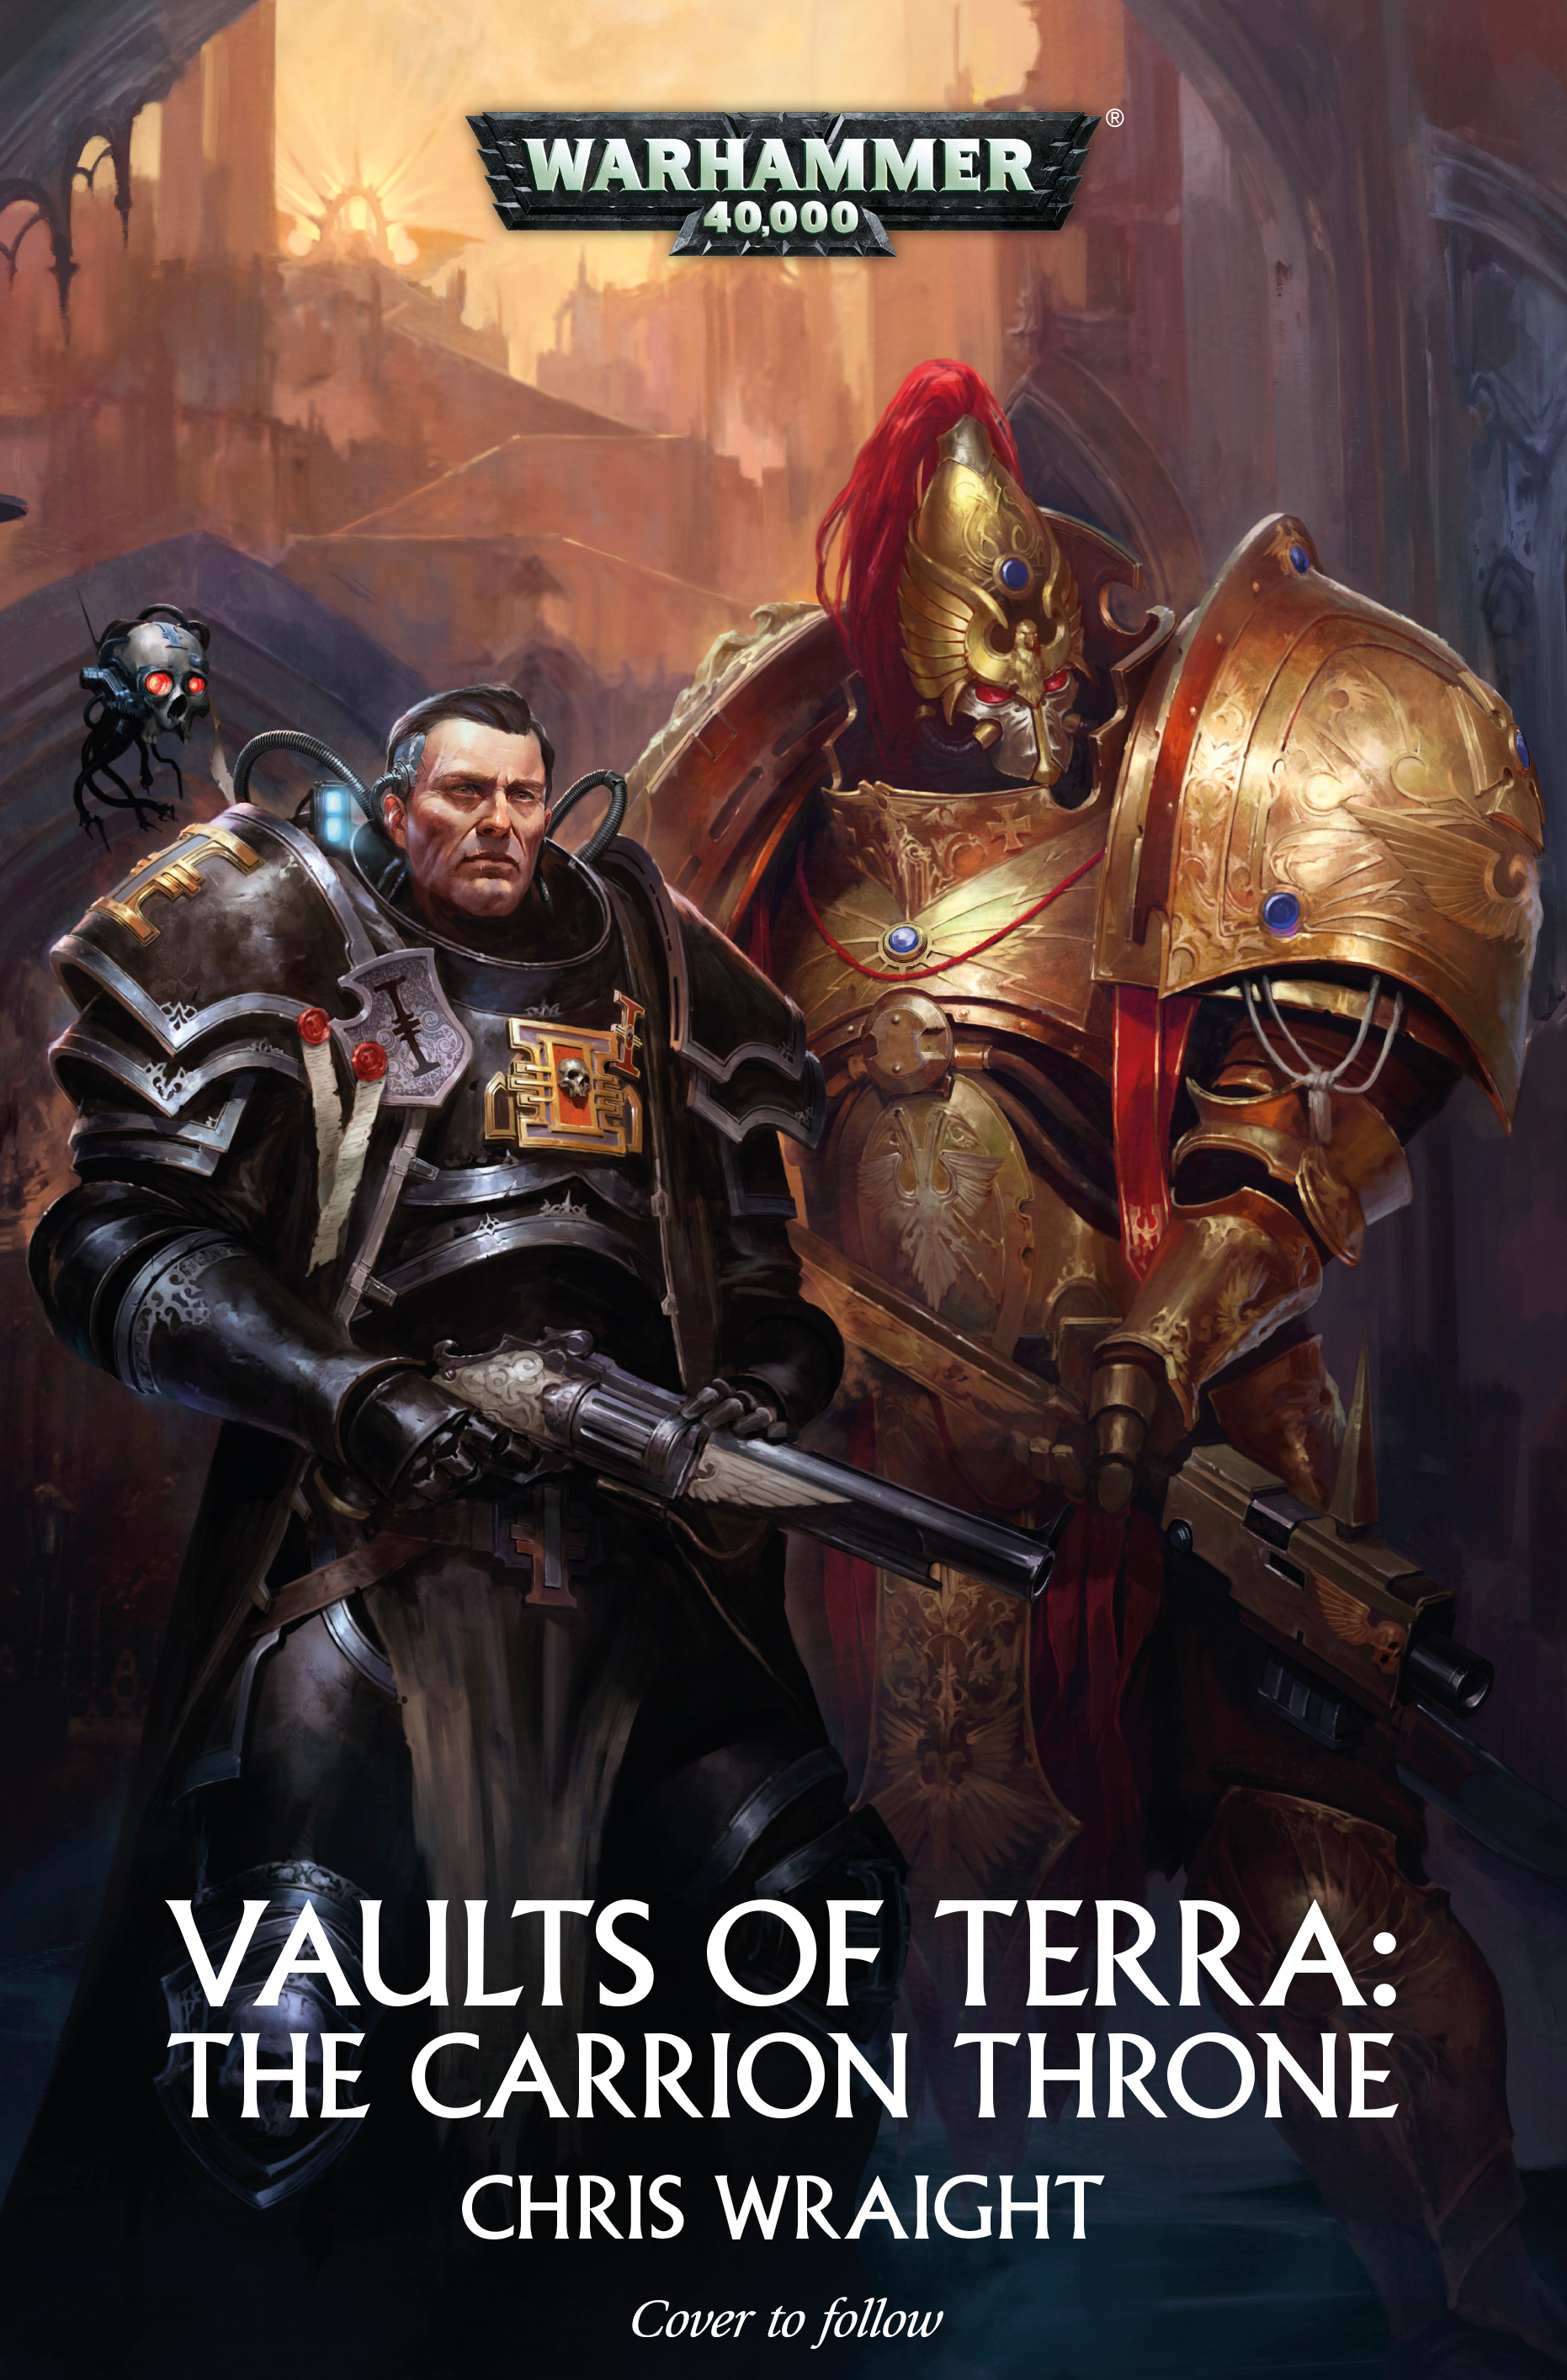 Vaults-of-Terra-The-Carrion-Throne-Royal-HB-Cover.indd